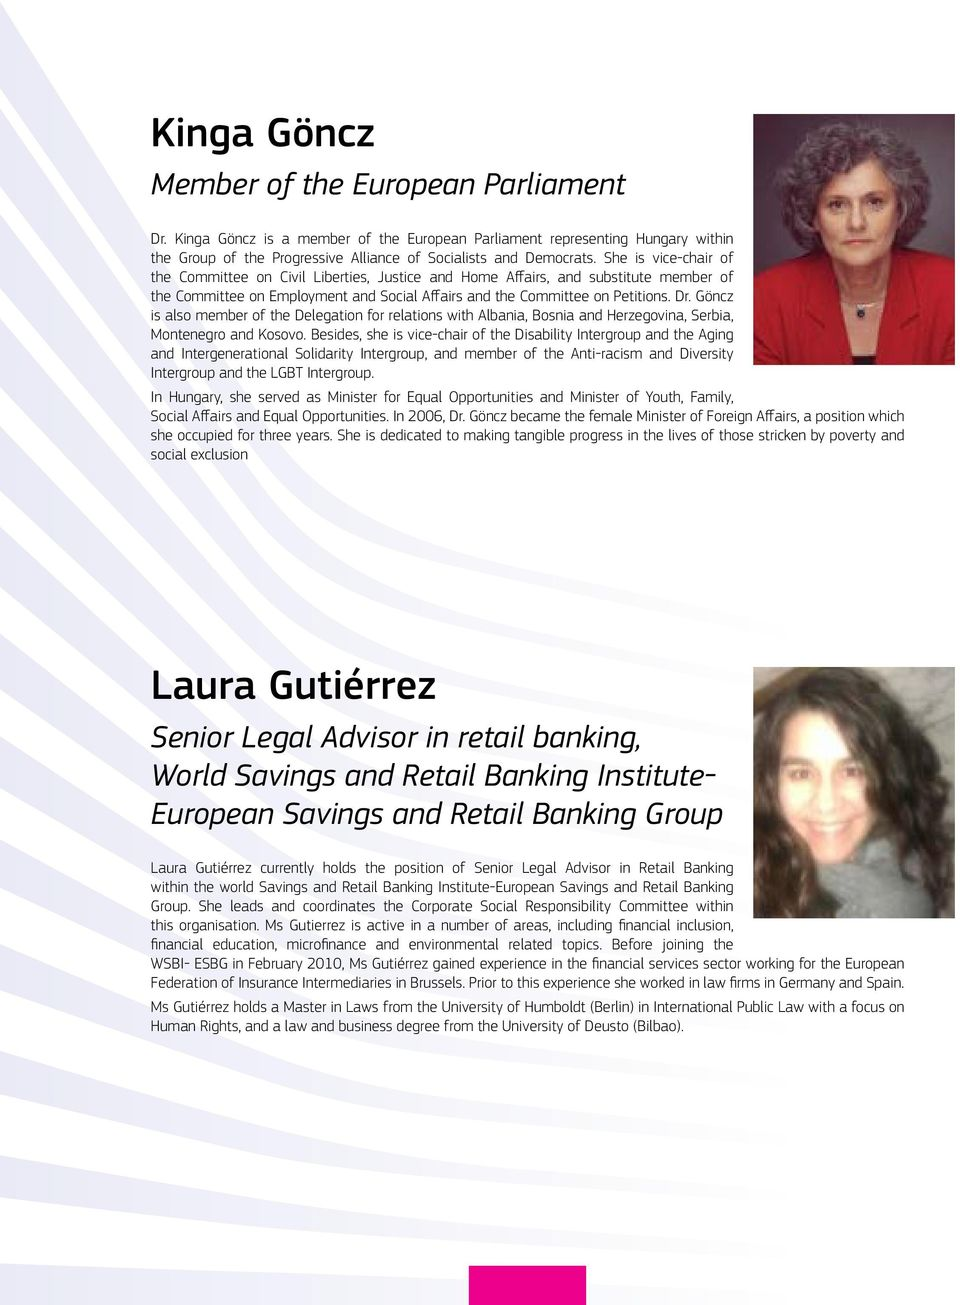 Göncz is also member of the Delegation for relations with Albania, Bosnia and Herzegovina, Serbia, Montenegro and Kosovo.